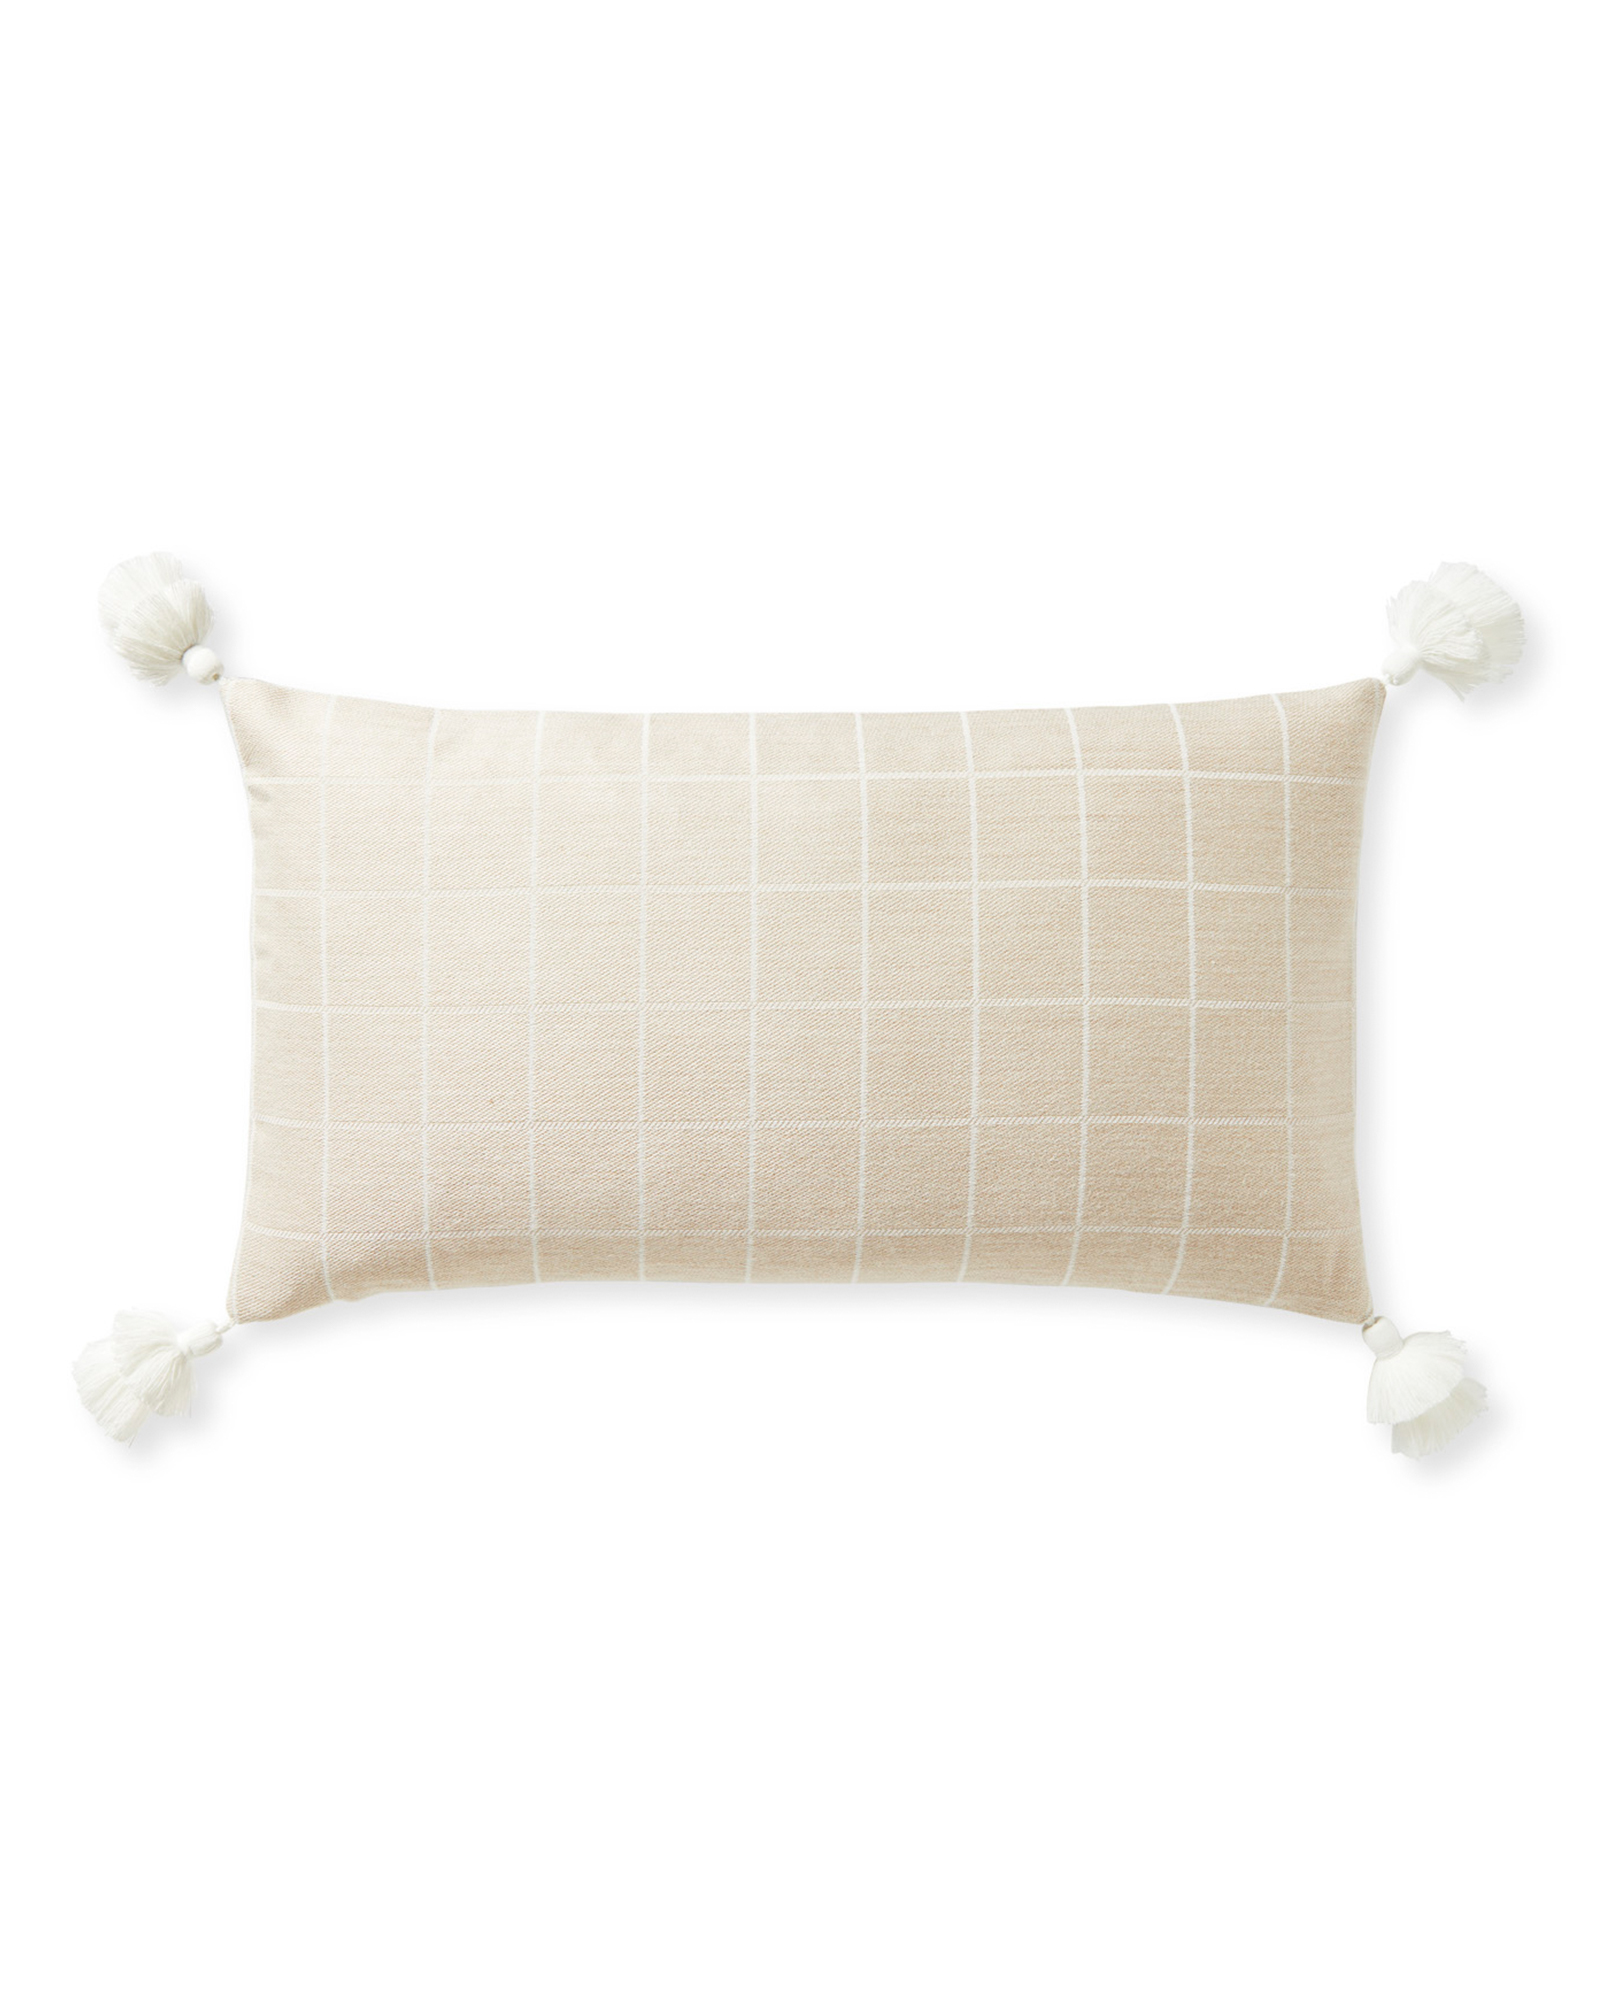 Mayne Pillow Cover, Sand